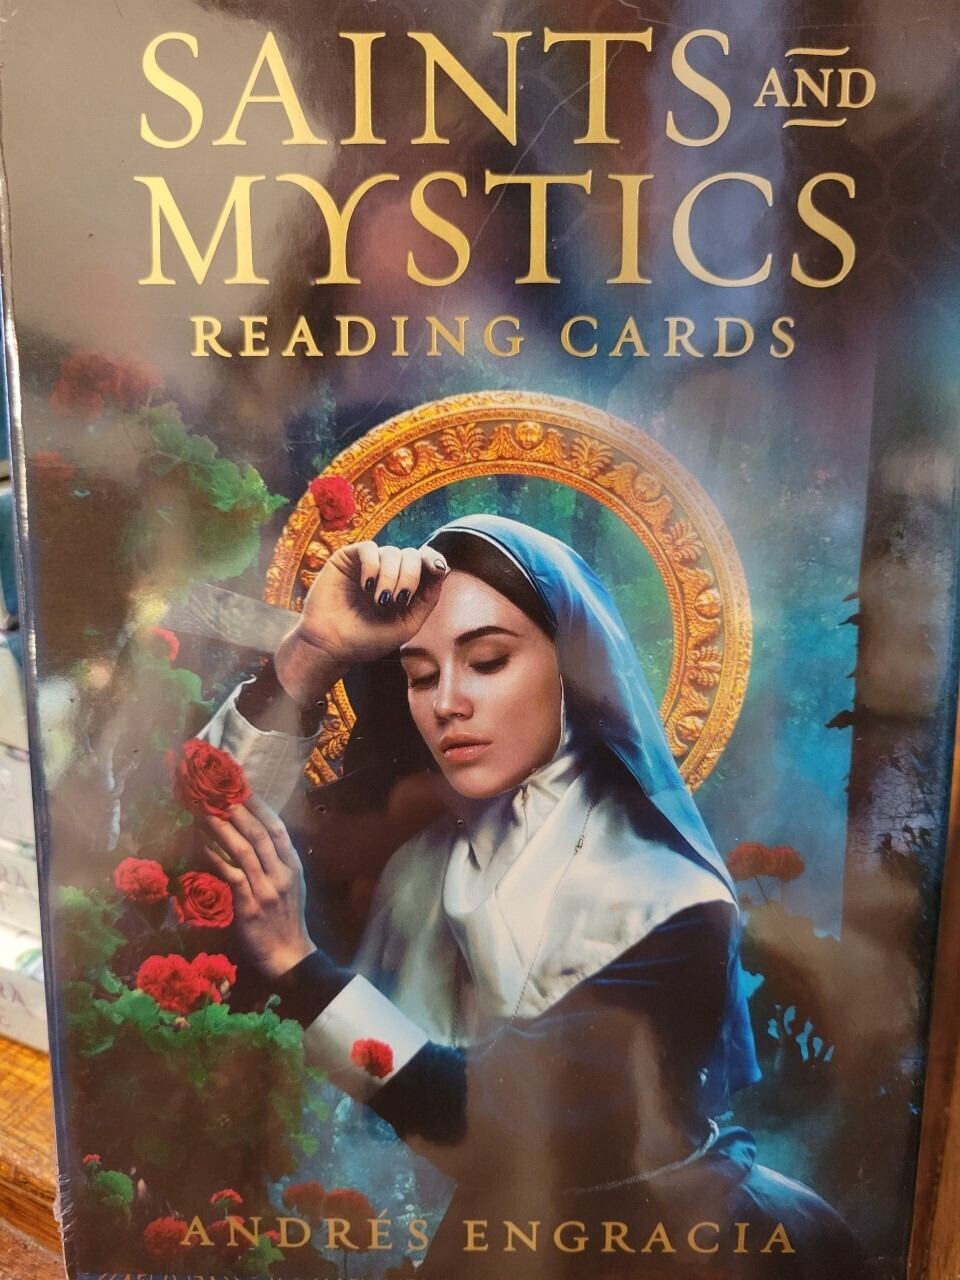 Saints & Mystics Reading Cards- Another of Judy's NEW Favorites.